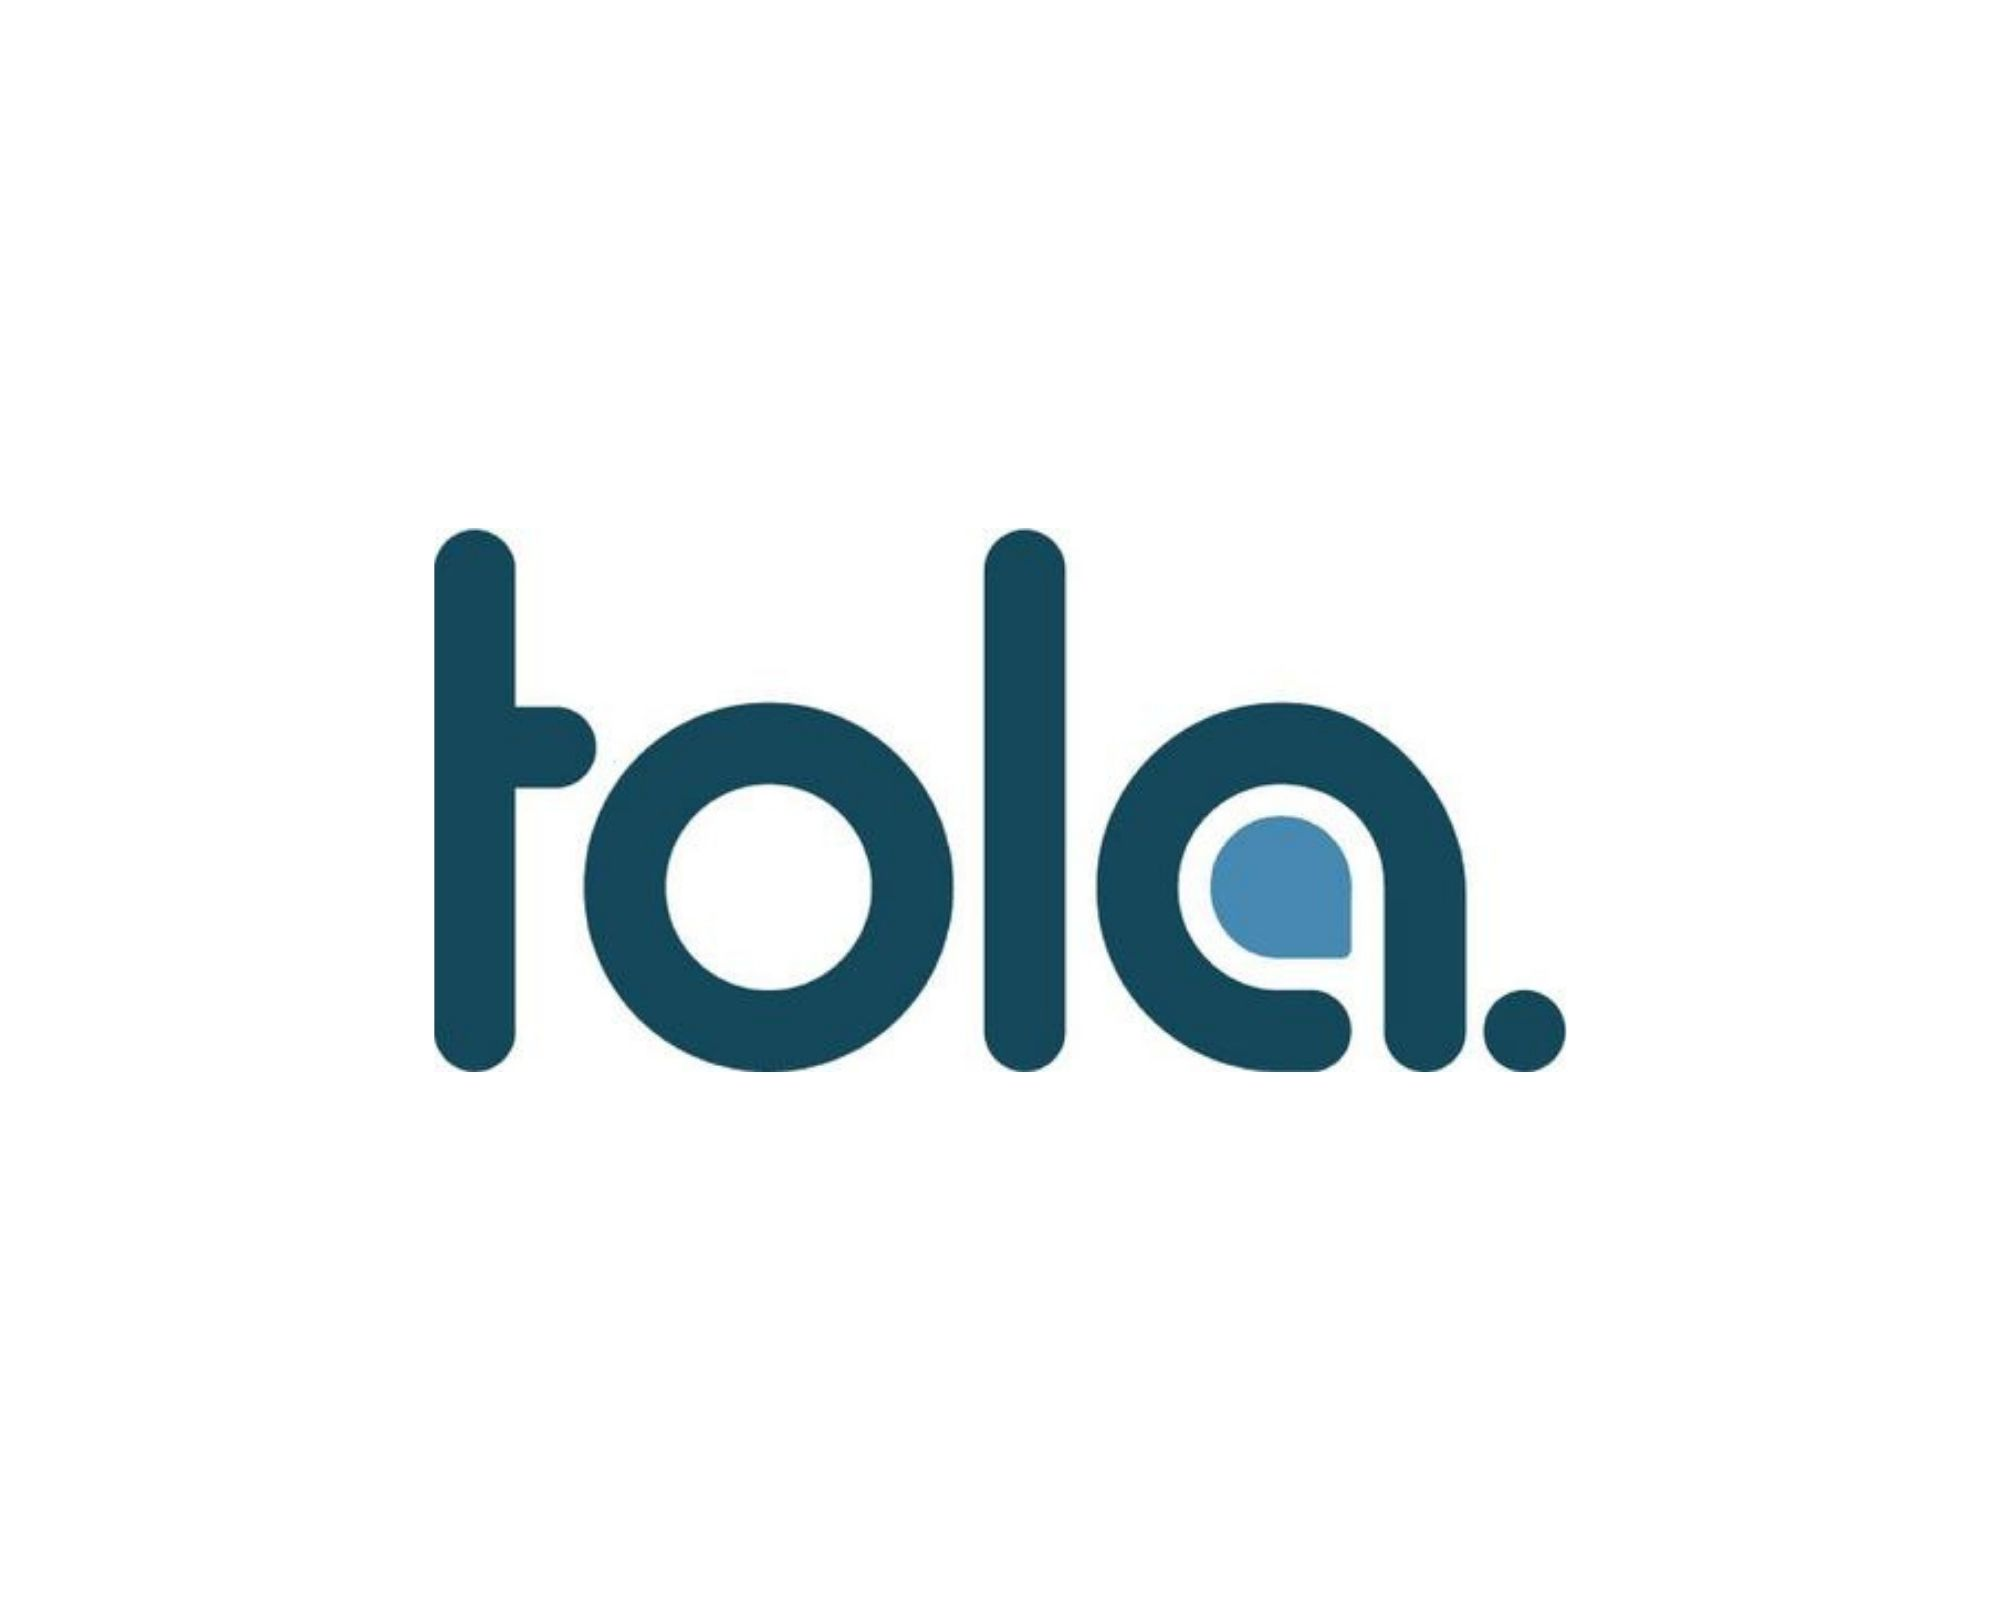 Tola Mobile- Positioning Tola as a Major Player in the Mobile Payments Industry